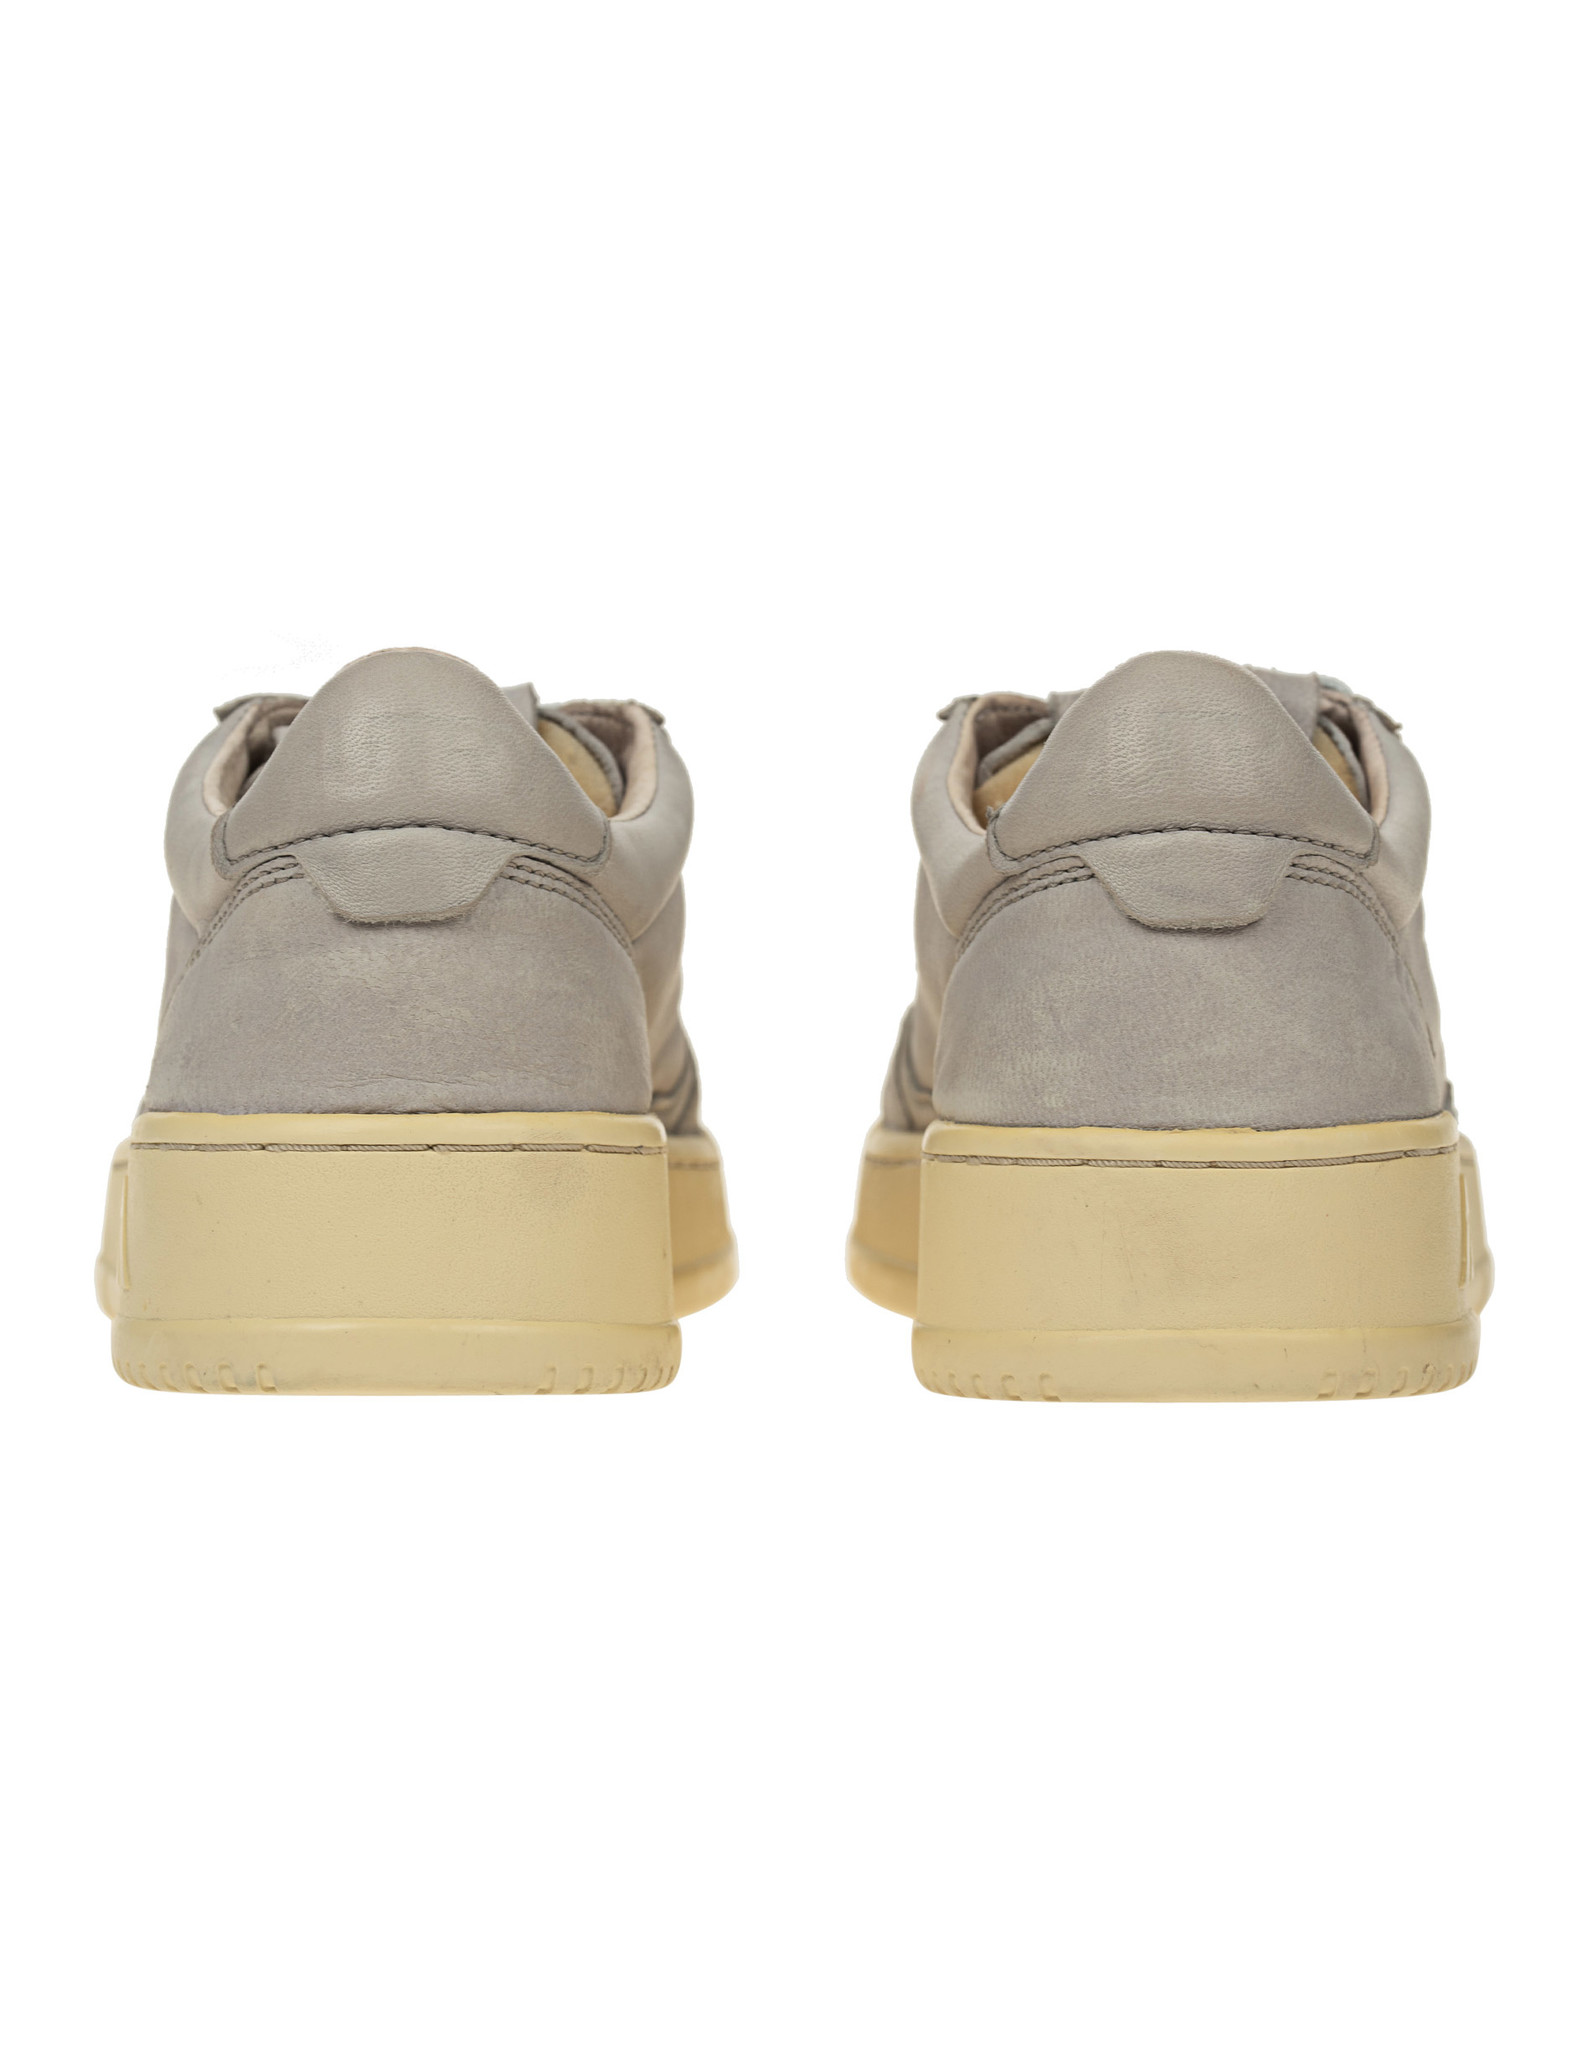 Medalist 01 Low Goat Grey Leather-3